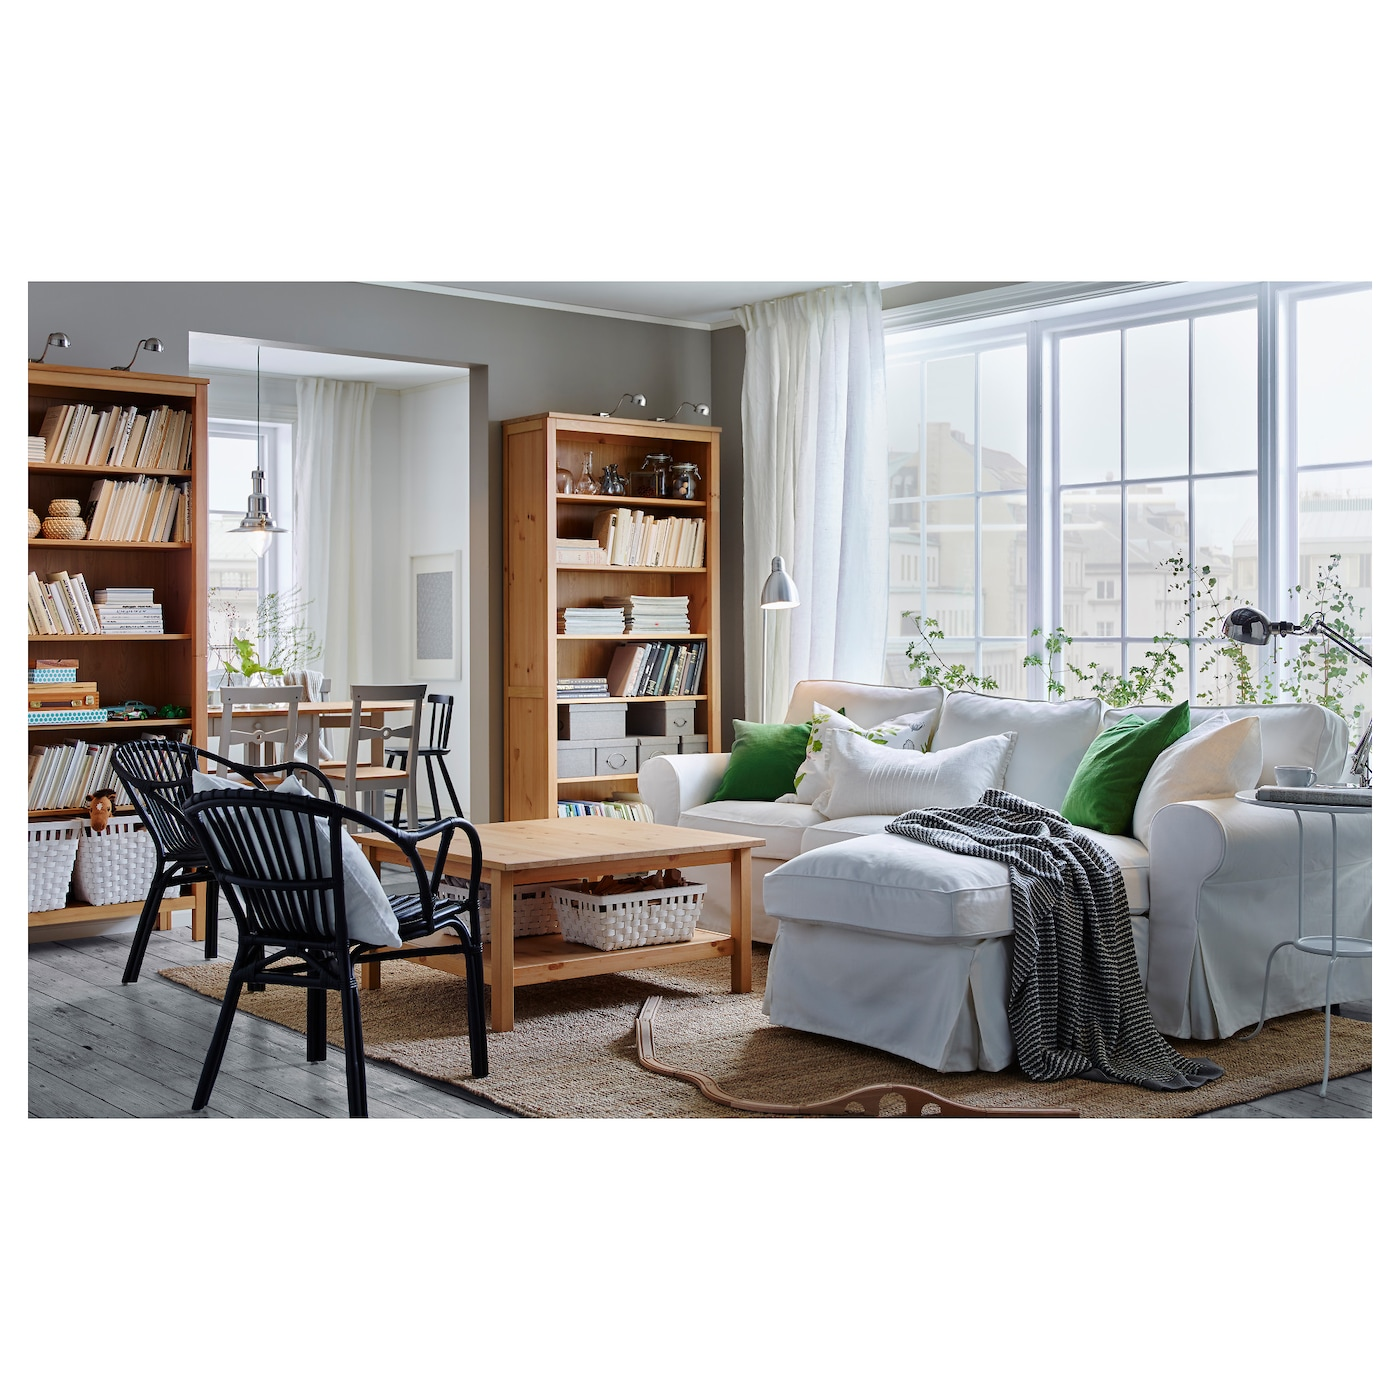 hemnes biblioth que brun clair 90 x 197 cm ikea. Black Bedroom Furniture Sets. Home Design Ideas